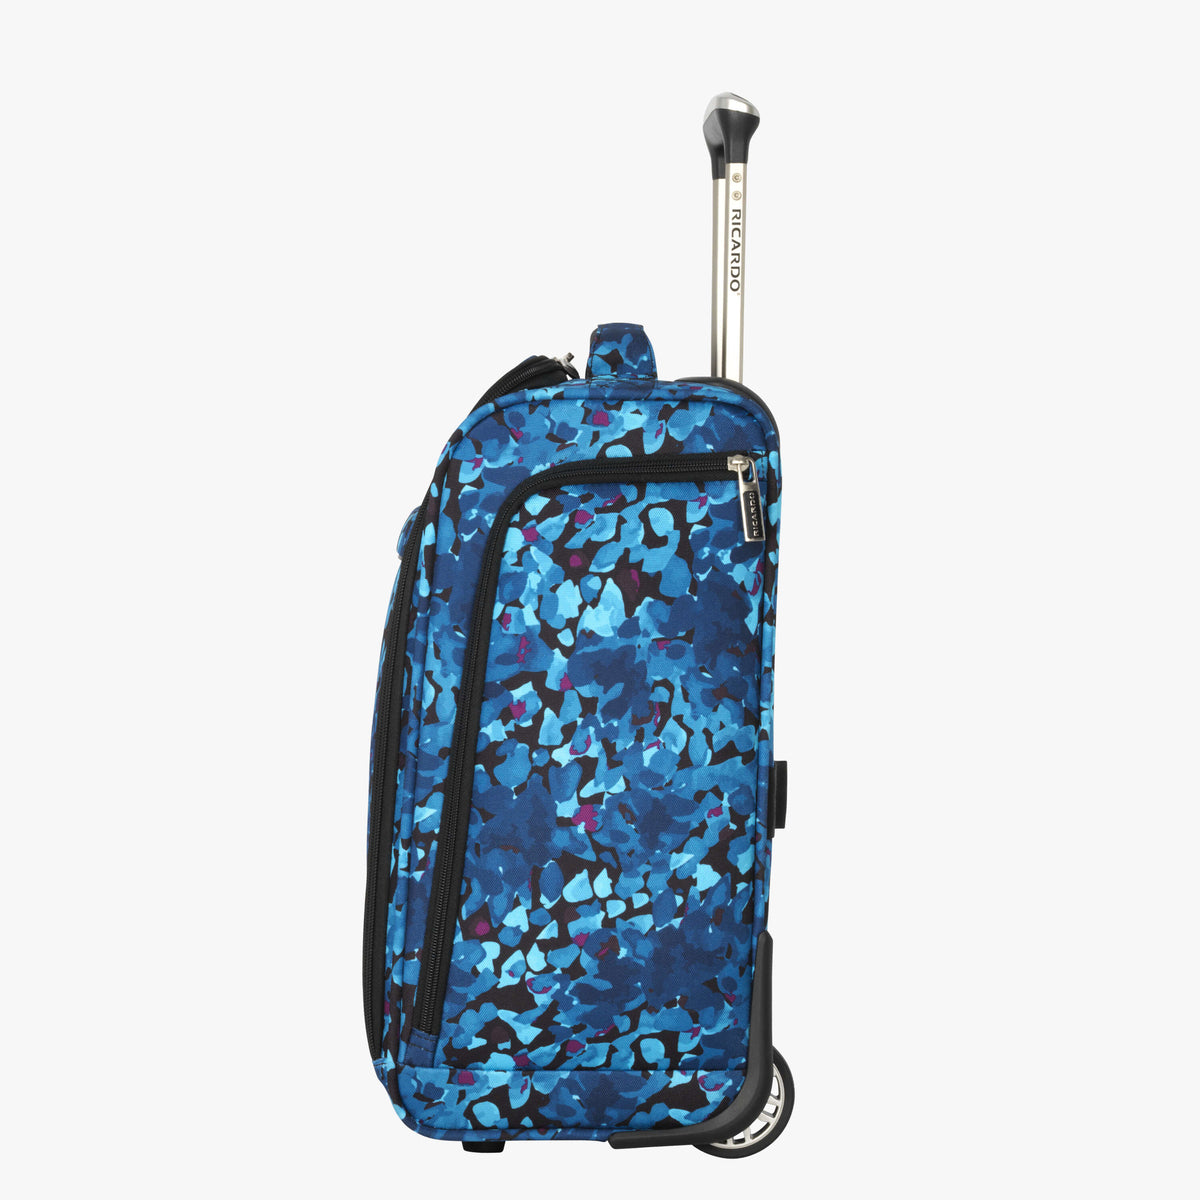 Mar Vista 2 0 Carry On Under Seat Luggage Rolling Tote